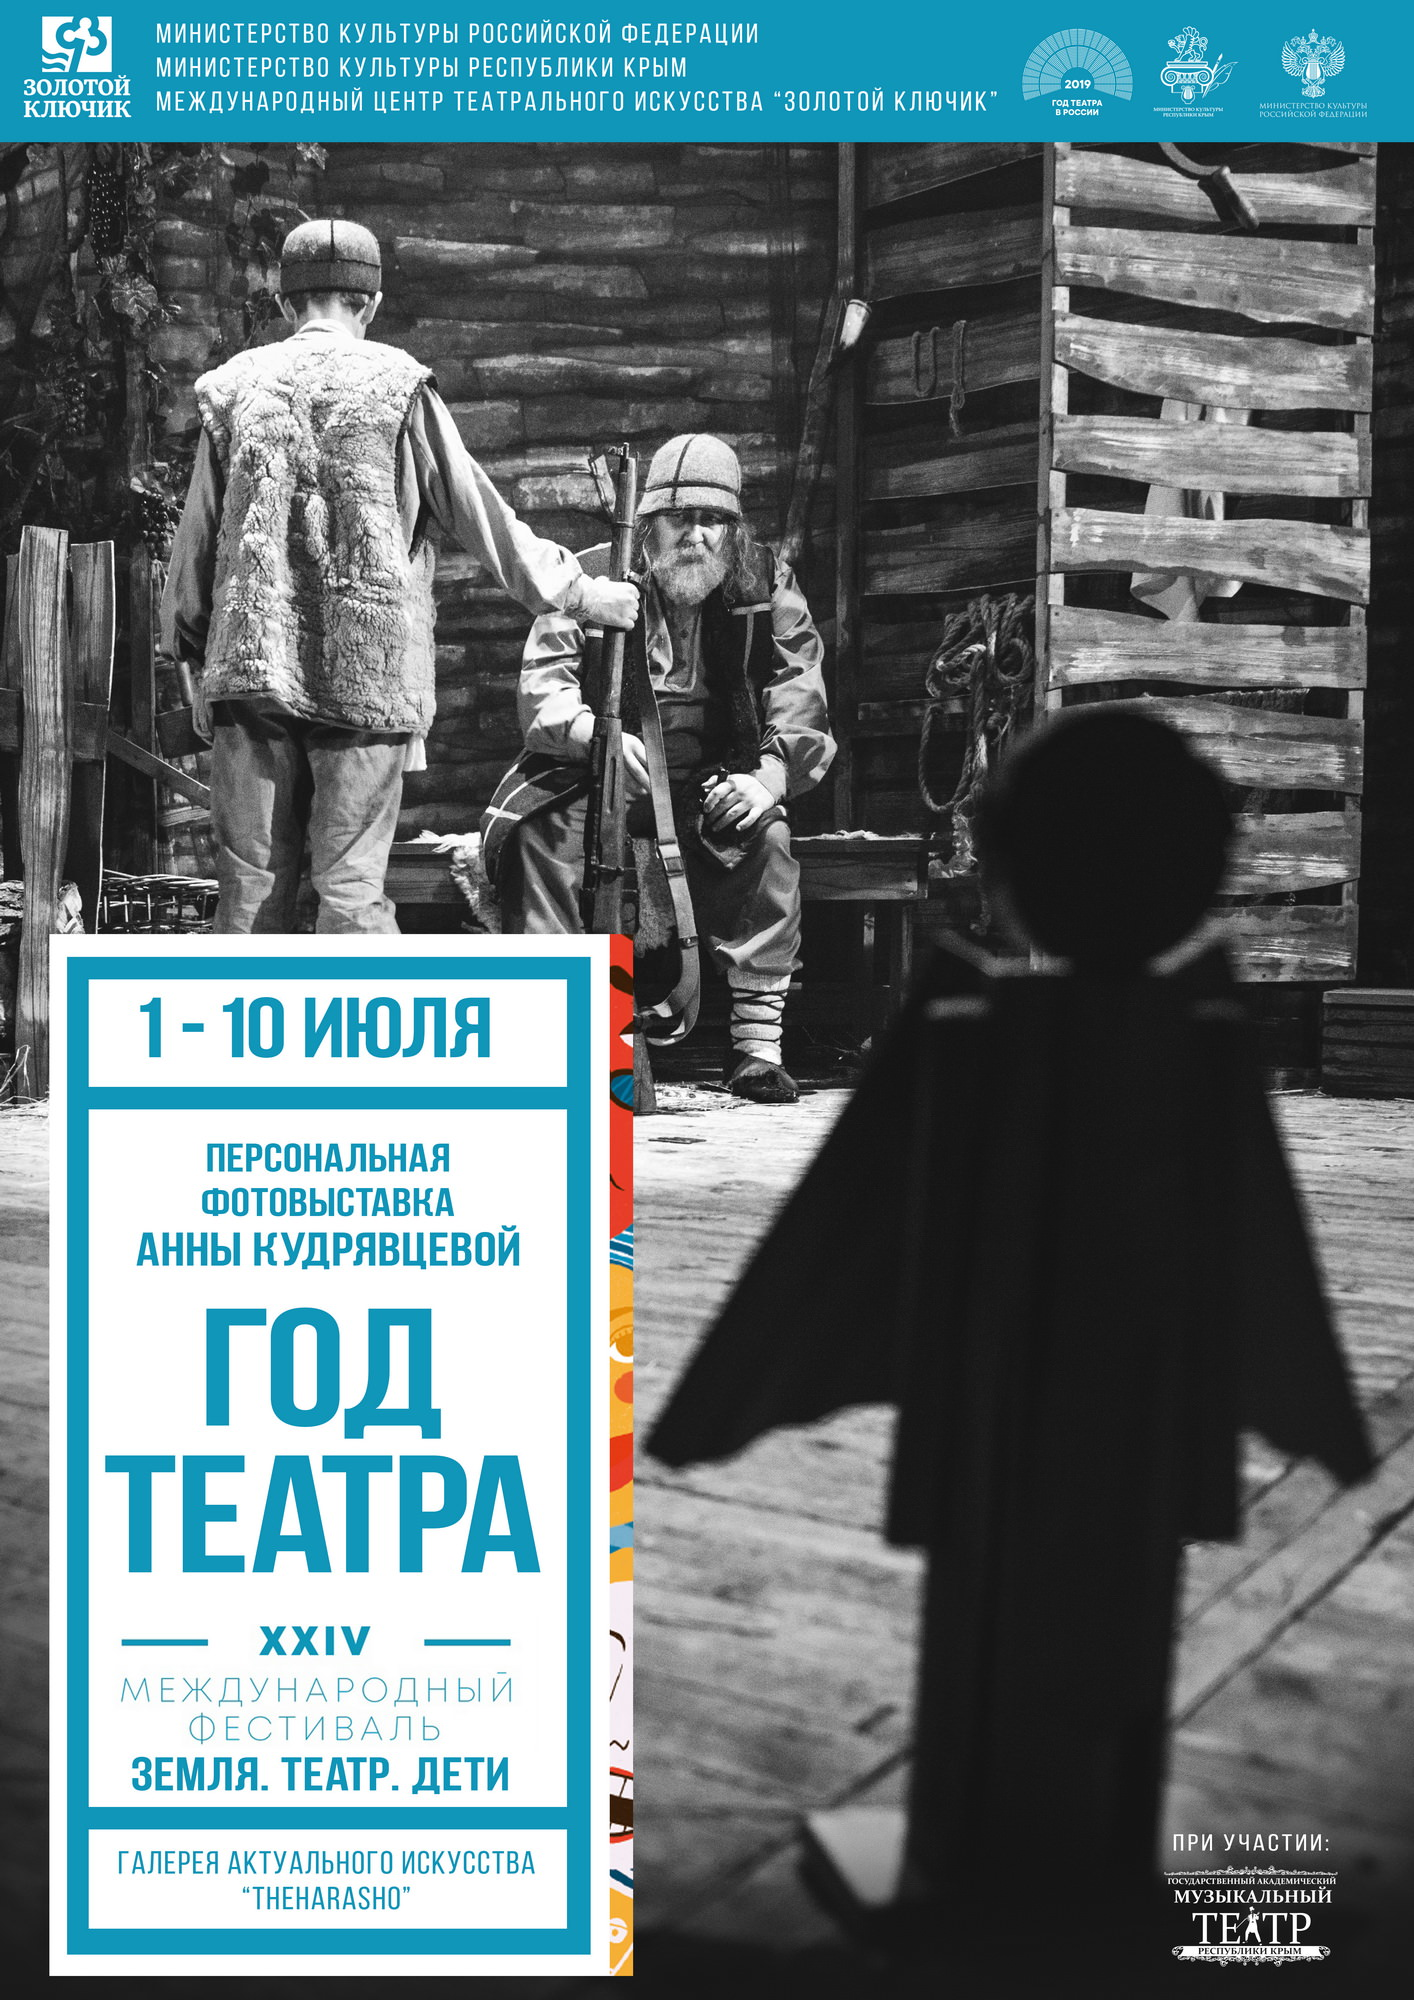 """Exhibition """"Year of the Theater"""""""